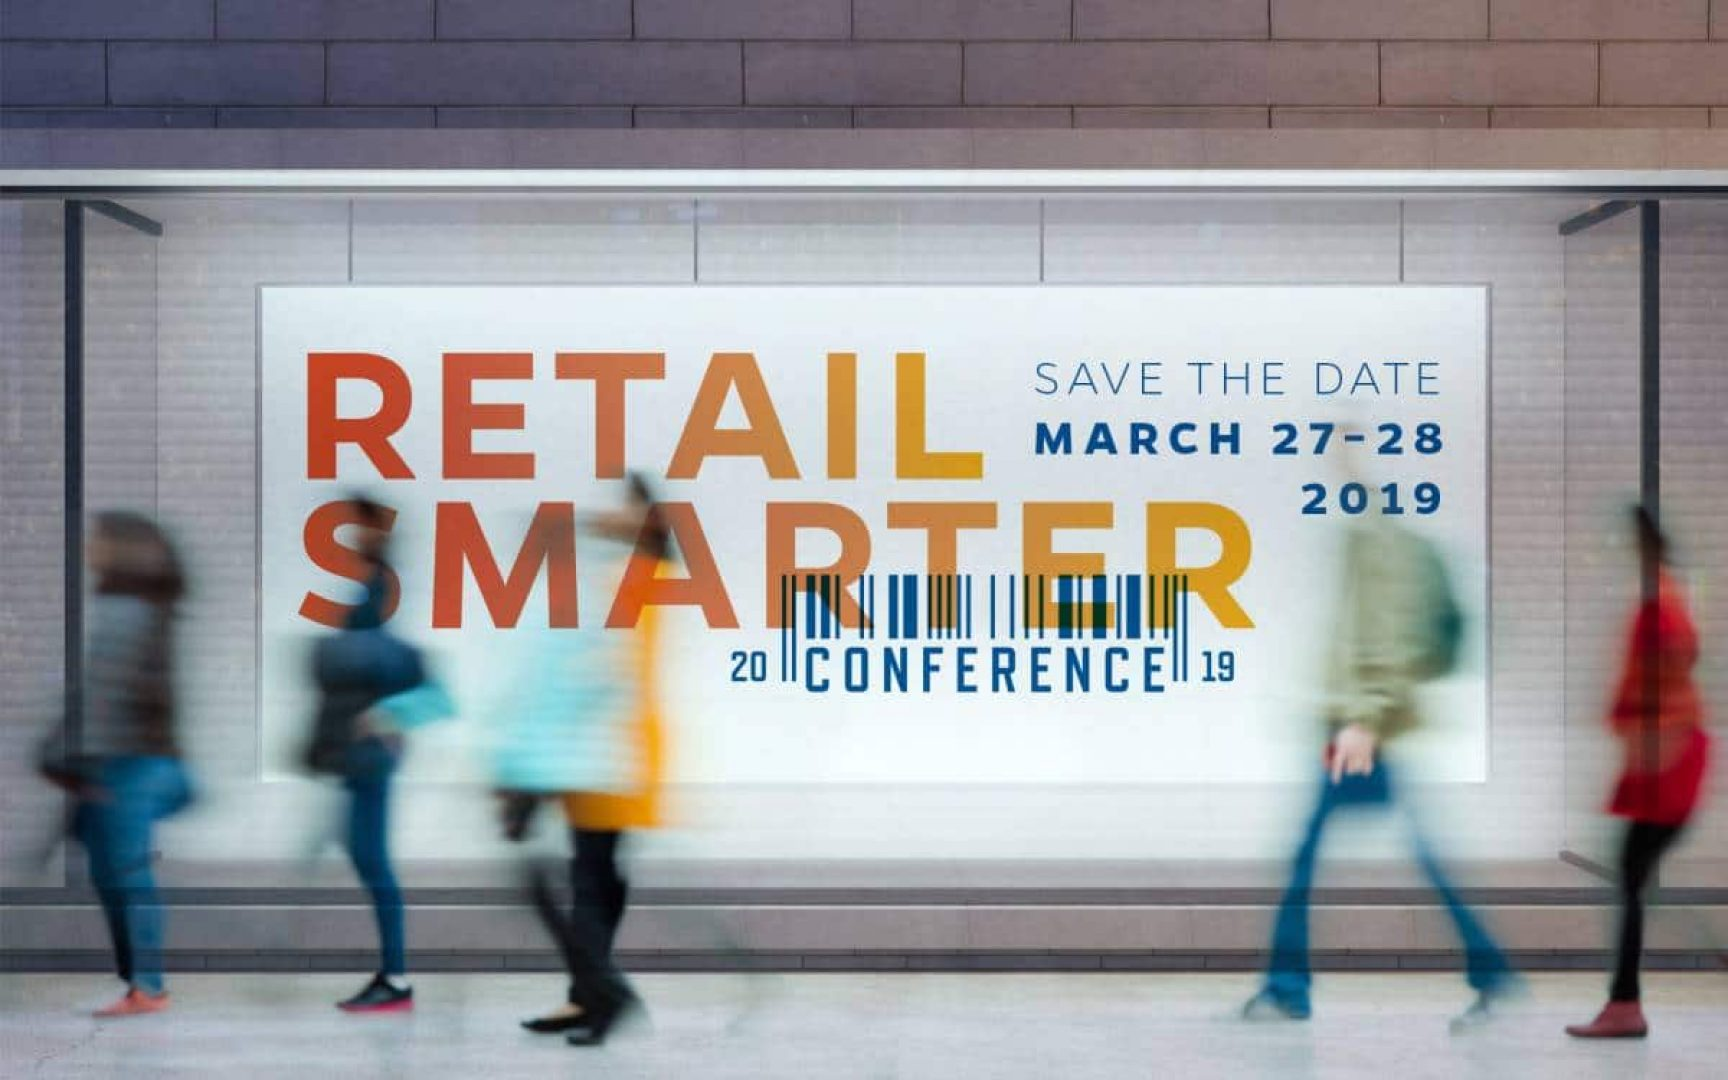 Sign in subway station that says Retail Smarter Conference Save the Date March 28-29, 2019 with blurs of people walking by.